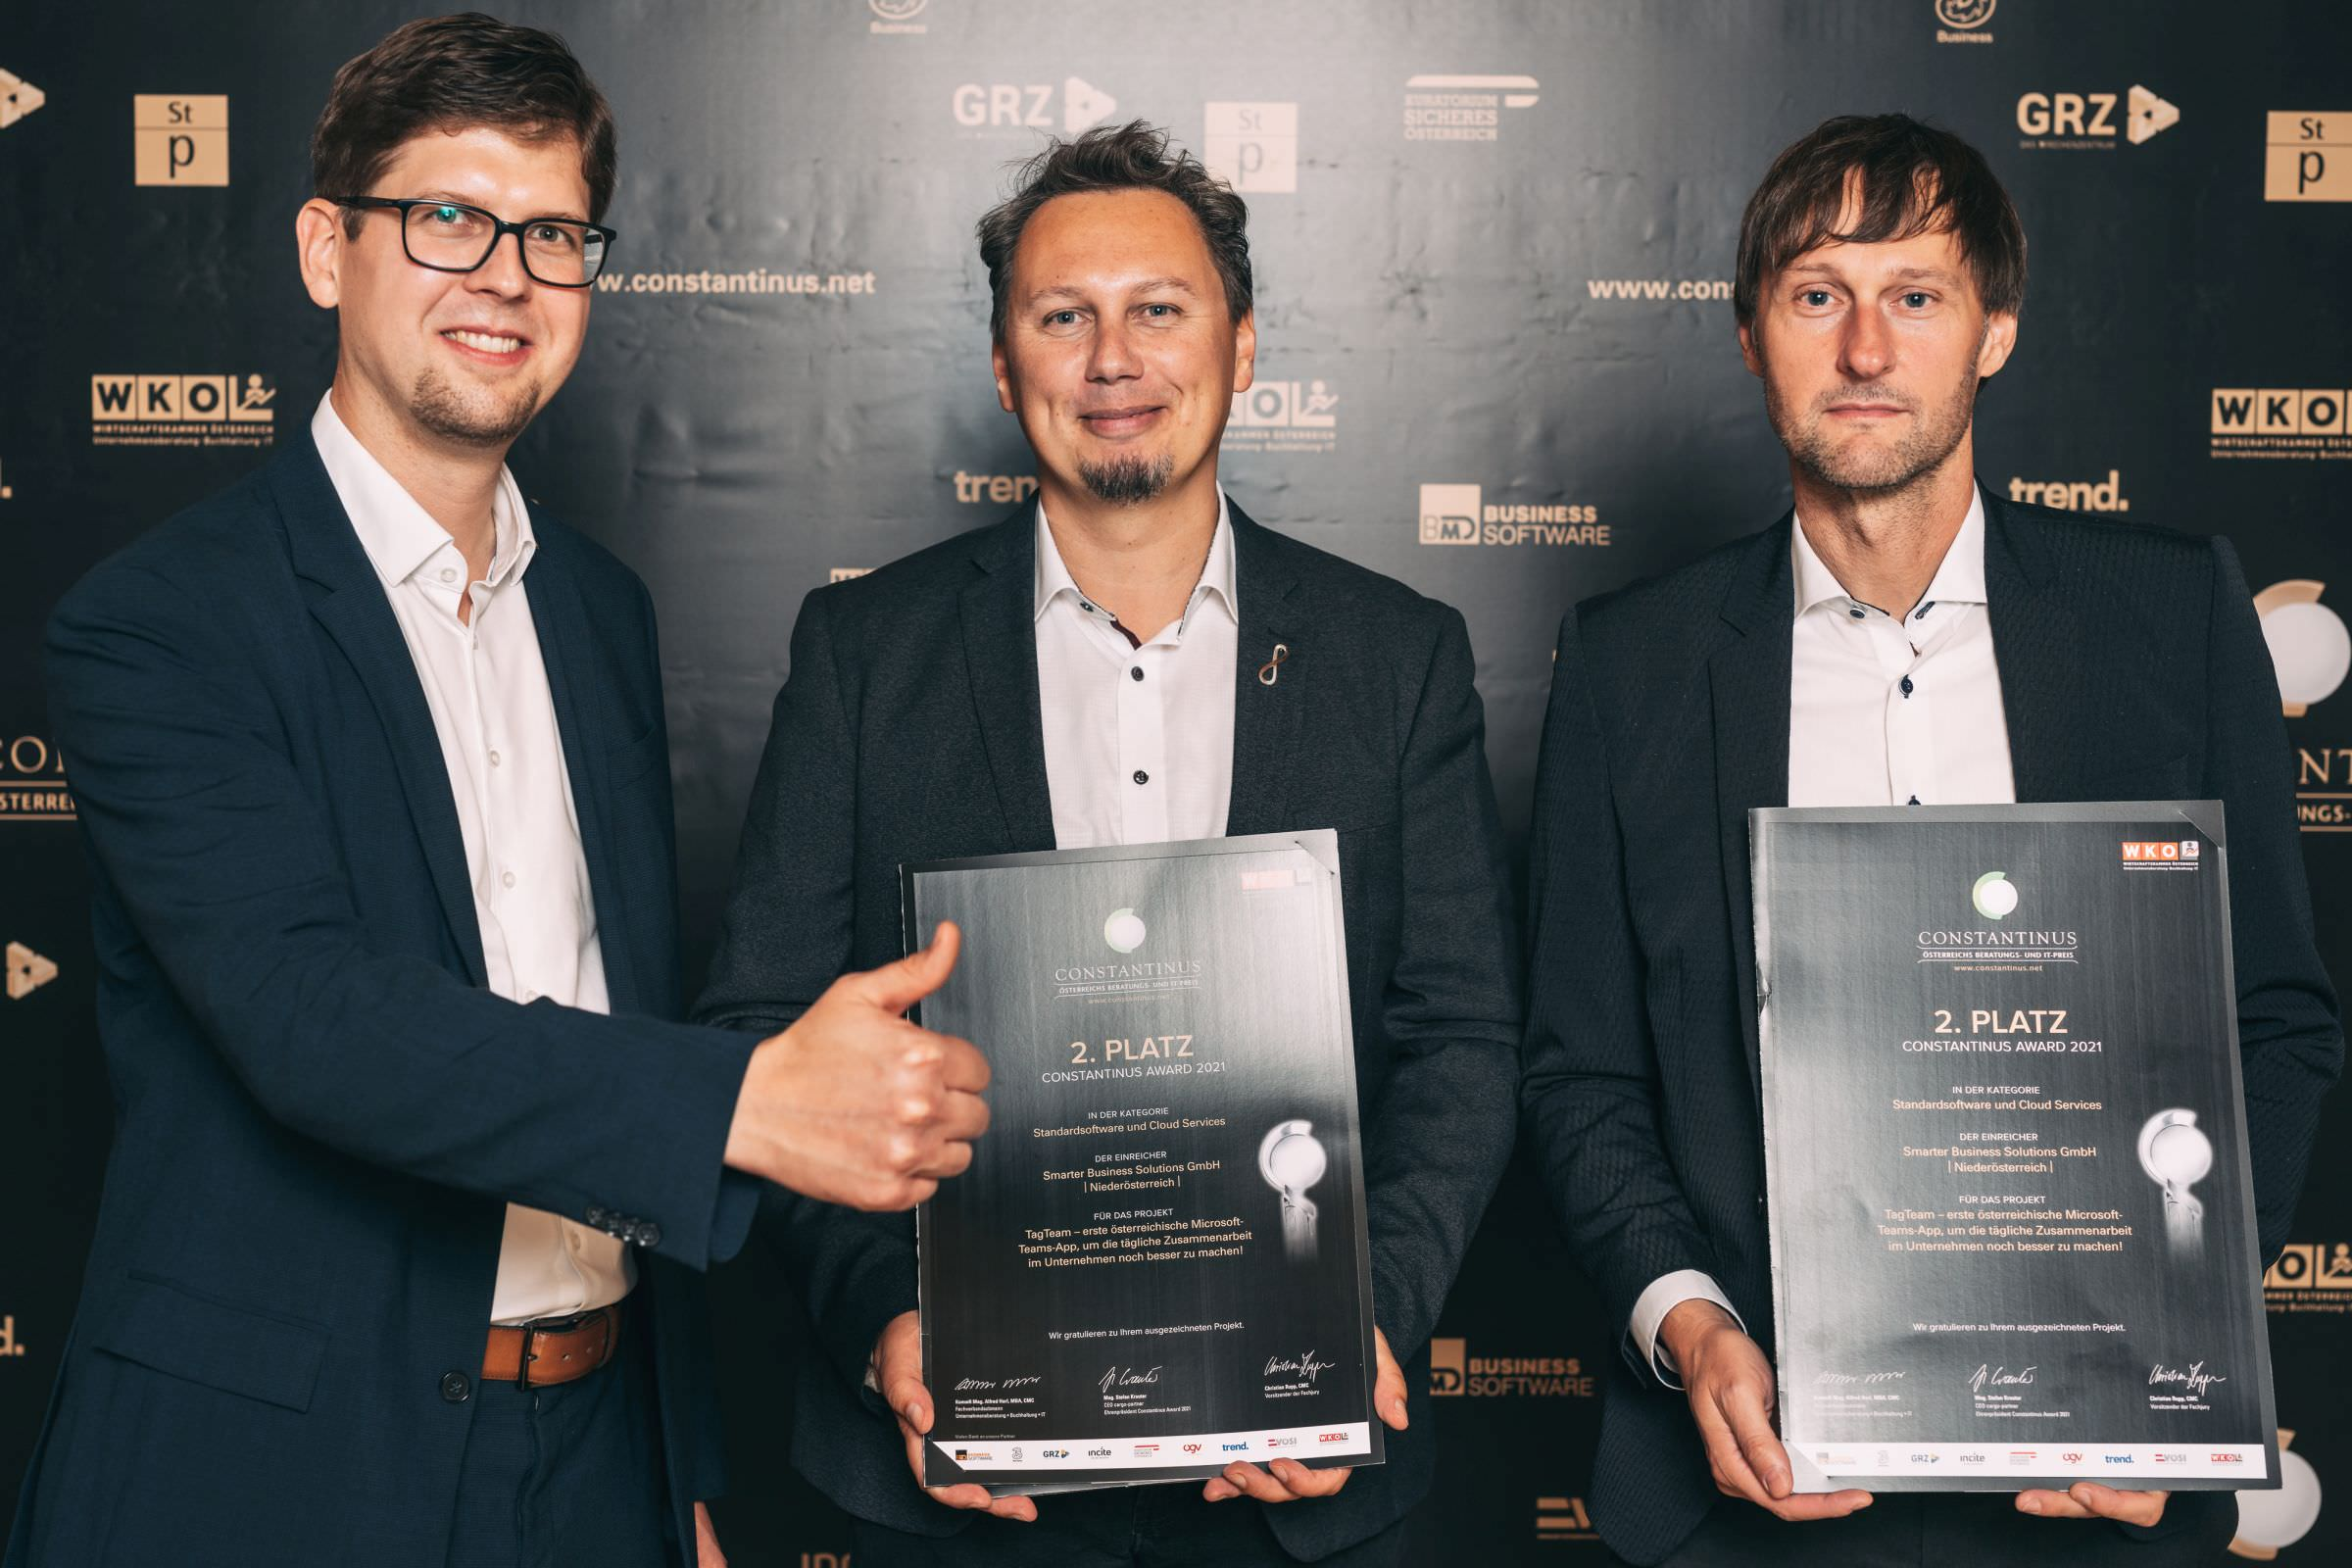 Many thanks to Mag. Erwin Kraxner (right) and Gernot Zangl (middle) from ÖBB, who represented us as customers at the award ceremony.